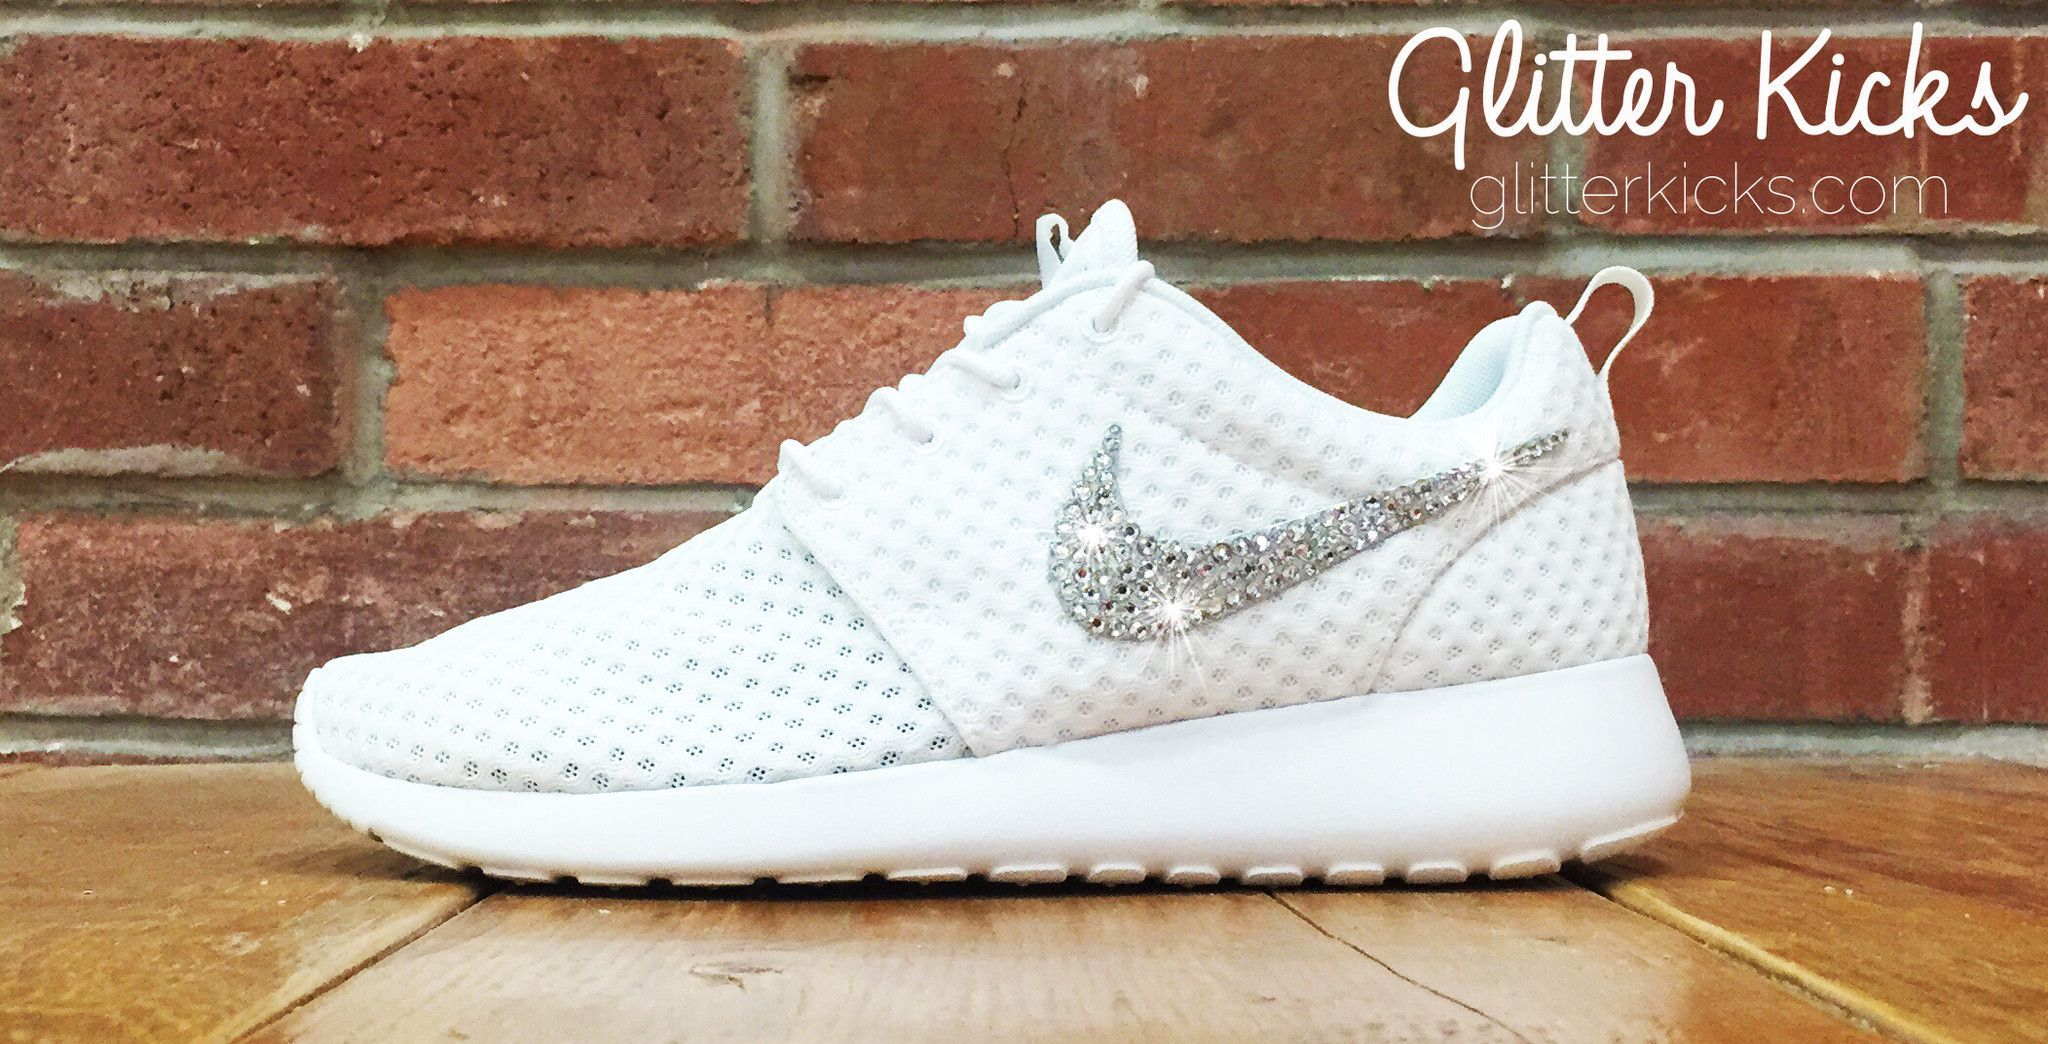 Women s Nike Roshe One Casual Shoes By Glitter Kicks - Customized With  Swarovski Elements Crystal Rhinestones 1bc1ffc46